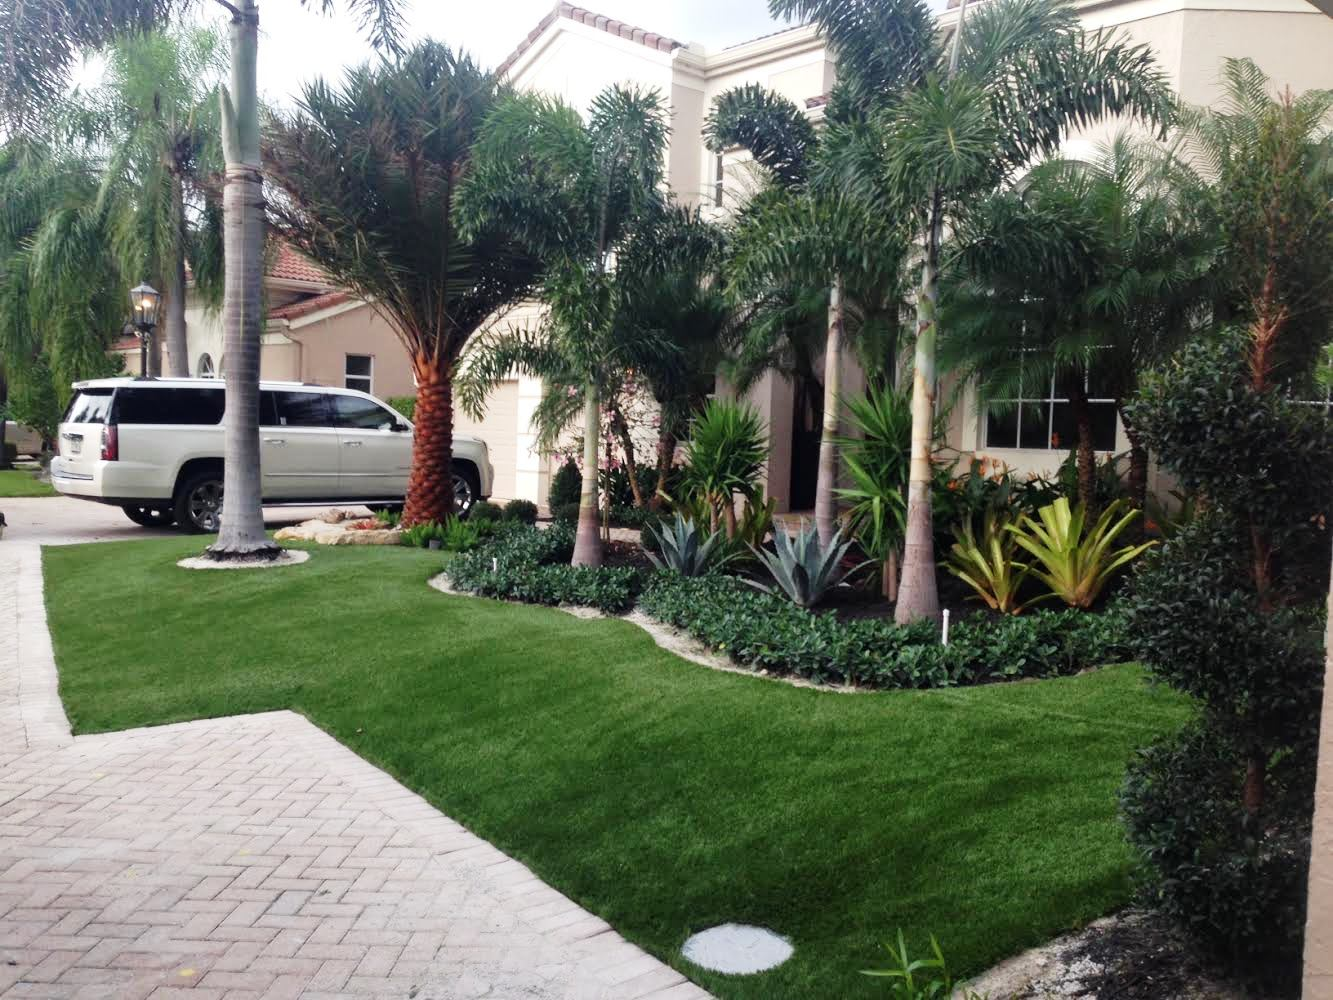 File artificial grass in the front wikimedia - Casas con jardines bonitos ...